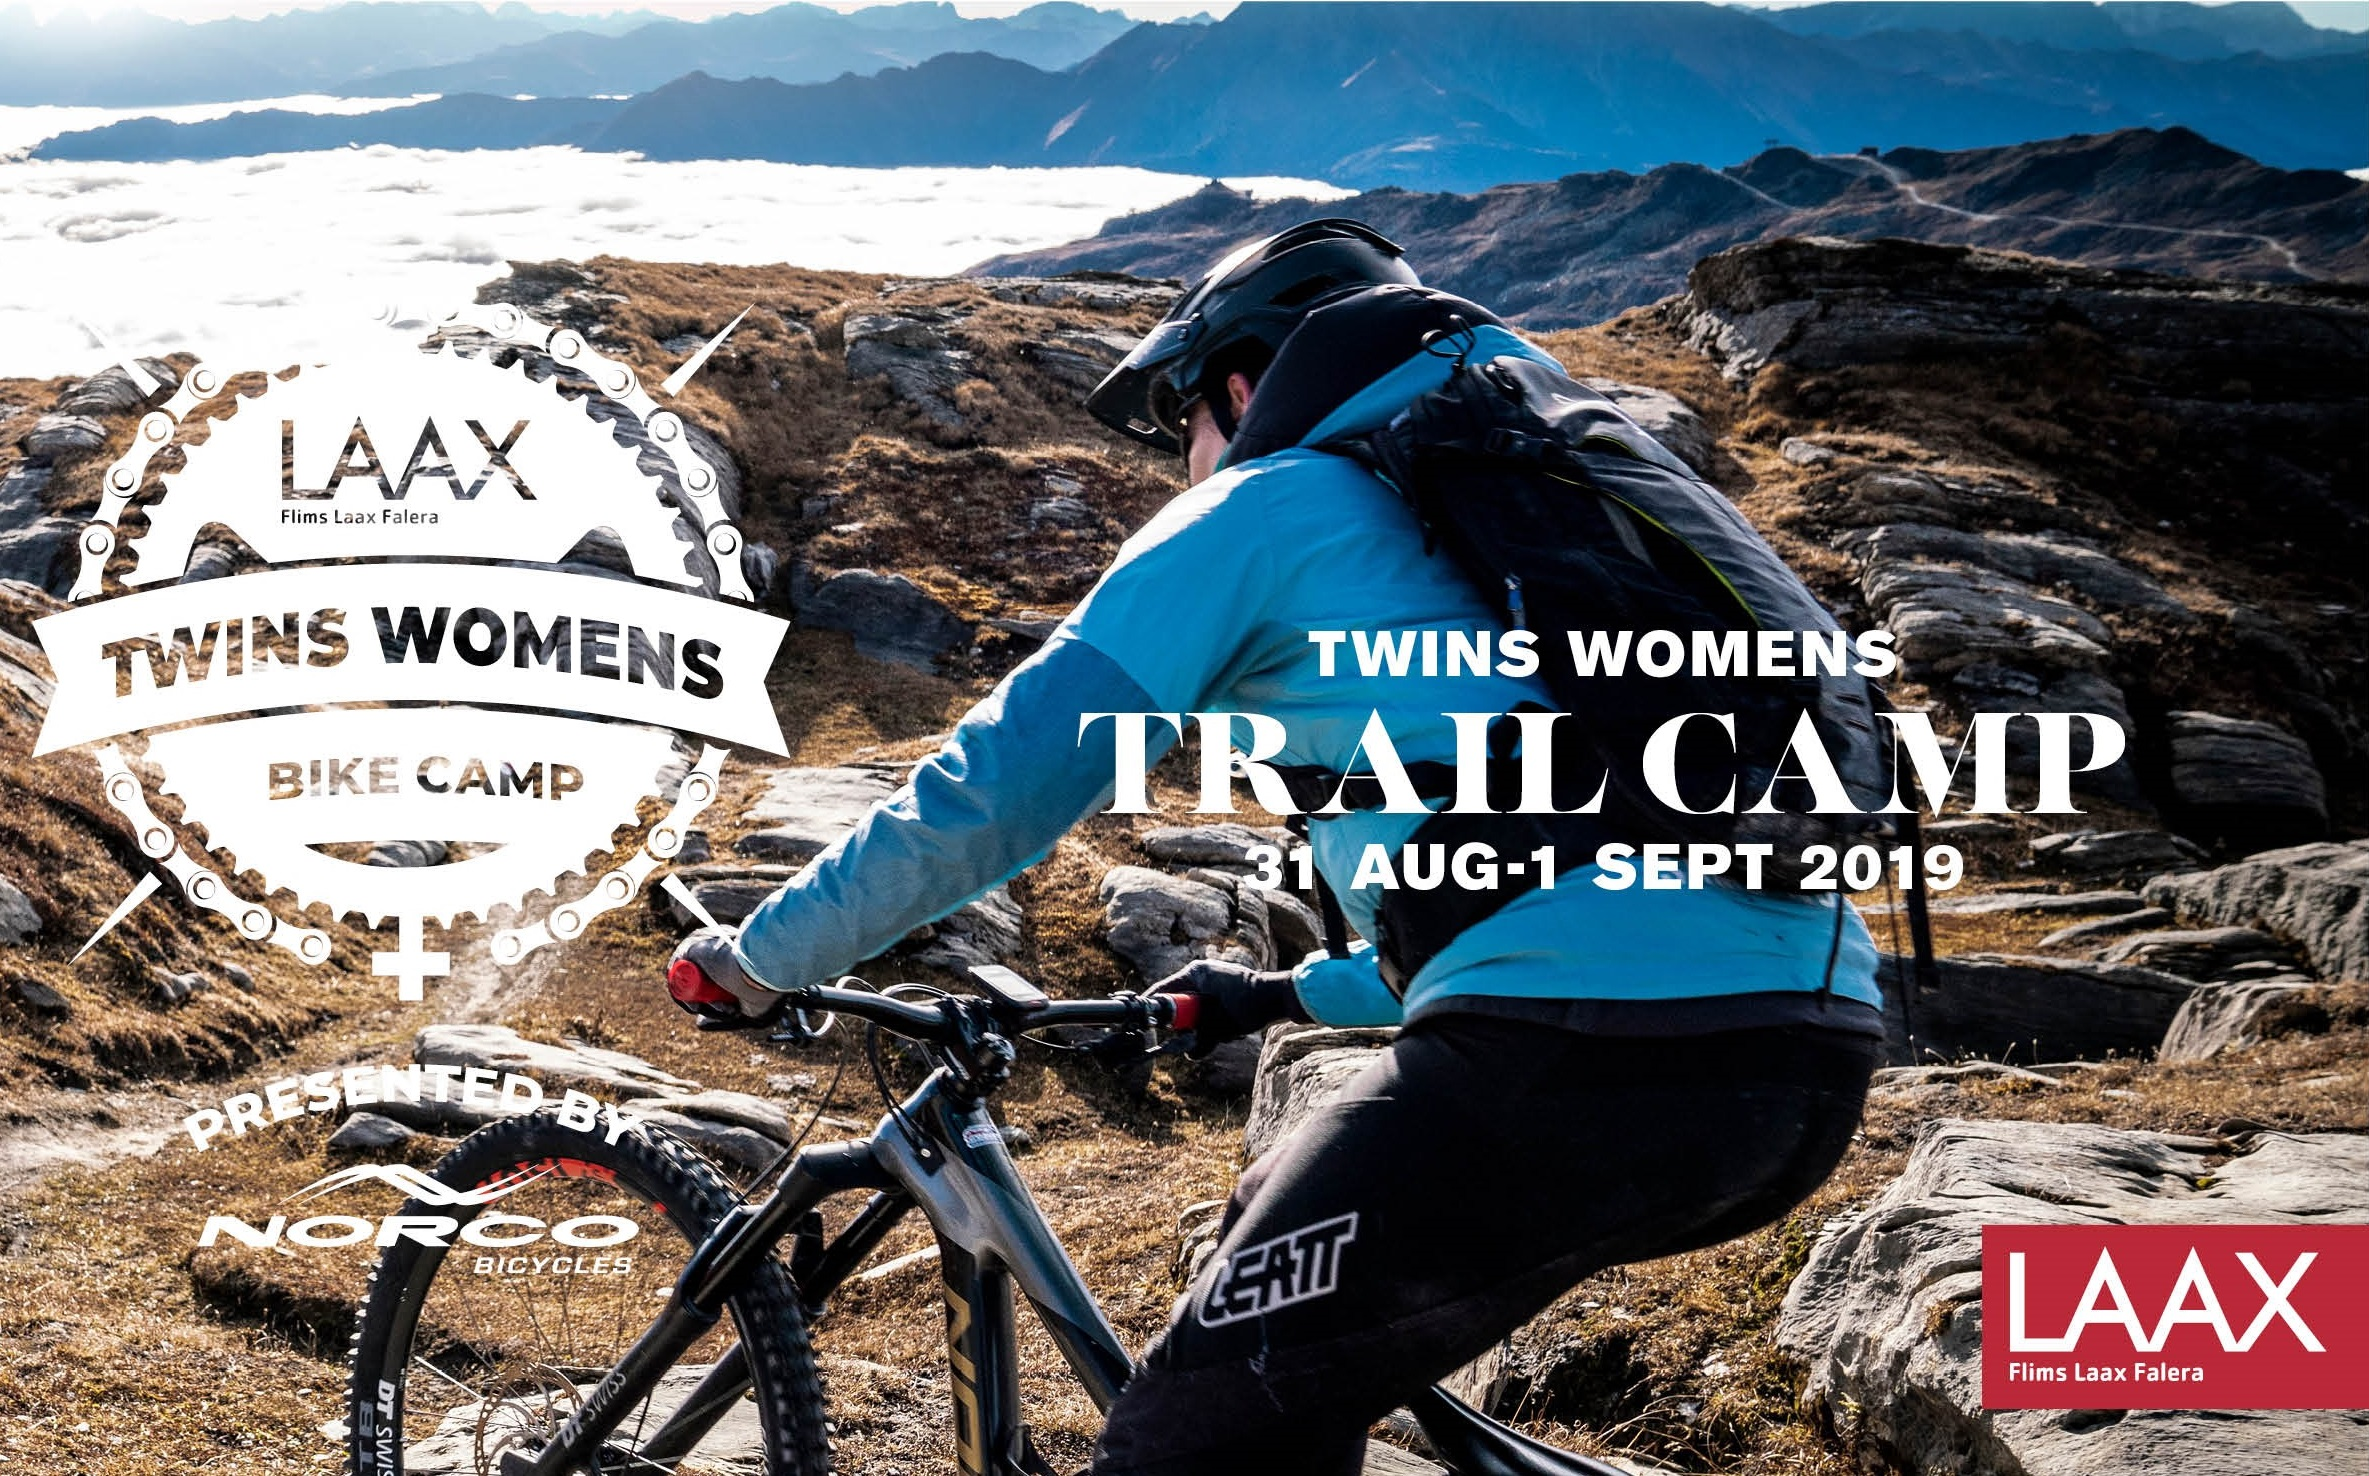 Twins Women's Bike Camp (Trail Camp)